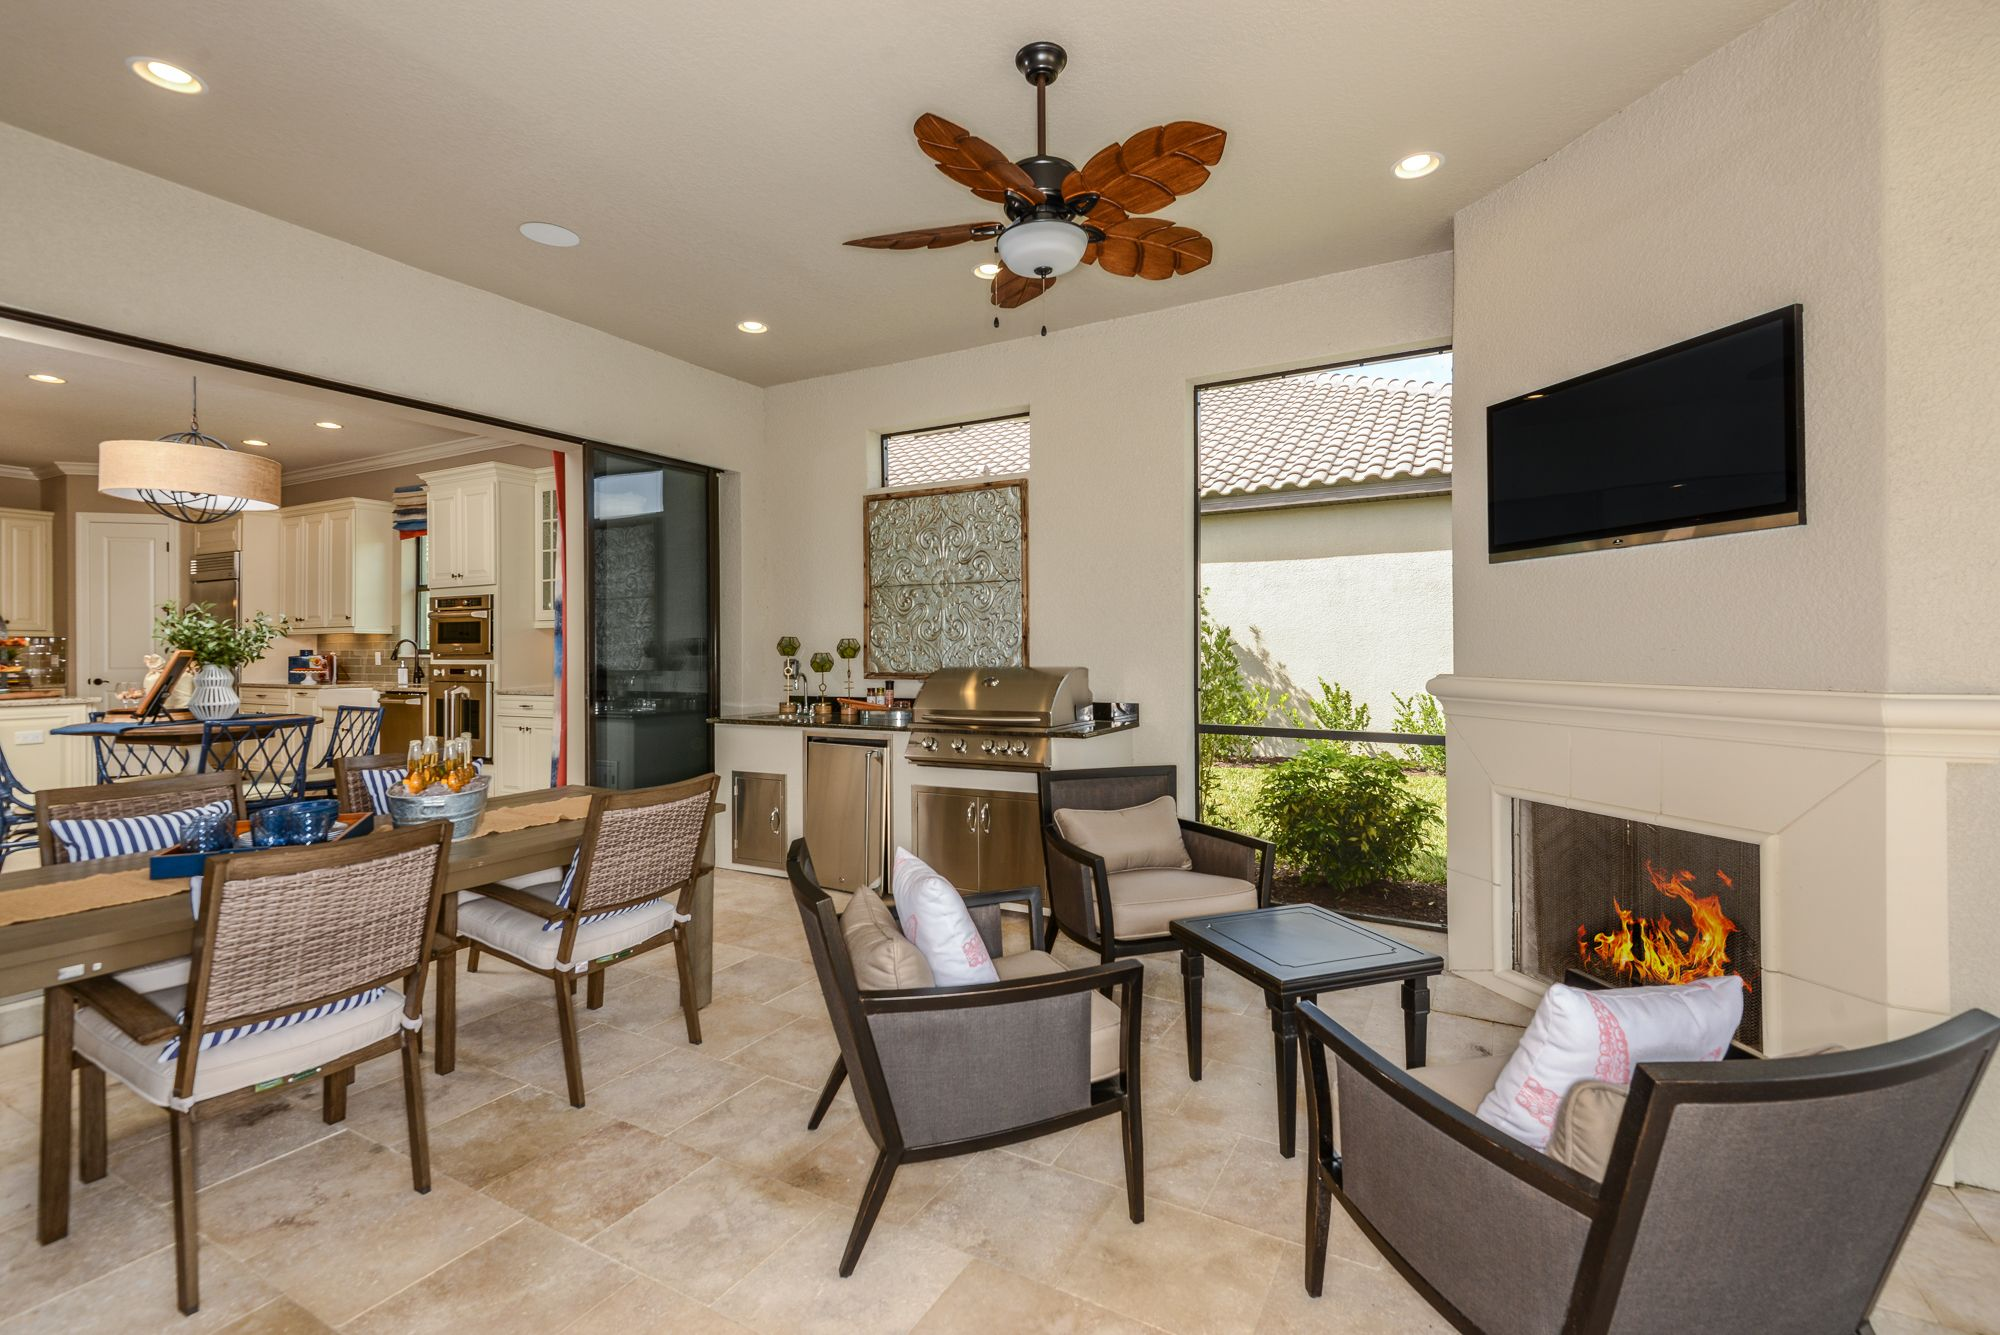 Dreaming Of Summer Bbqs In January In Florida You Don T Have To Wait Backyard Patio Outdoorentertaining Newhome Naple New Homes Home Interior Styling